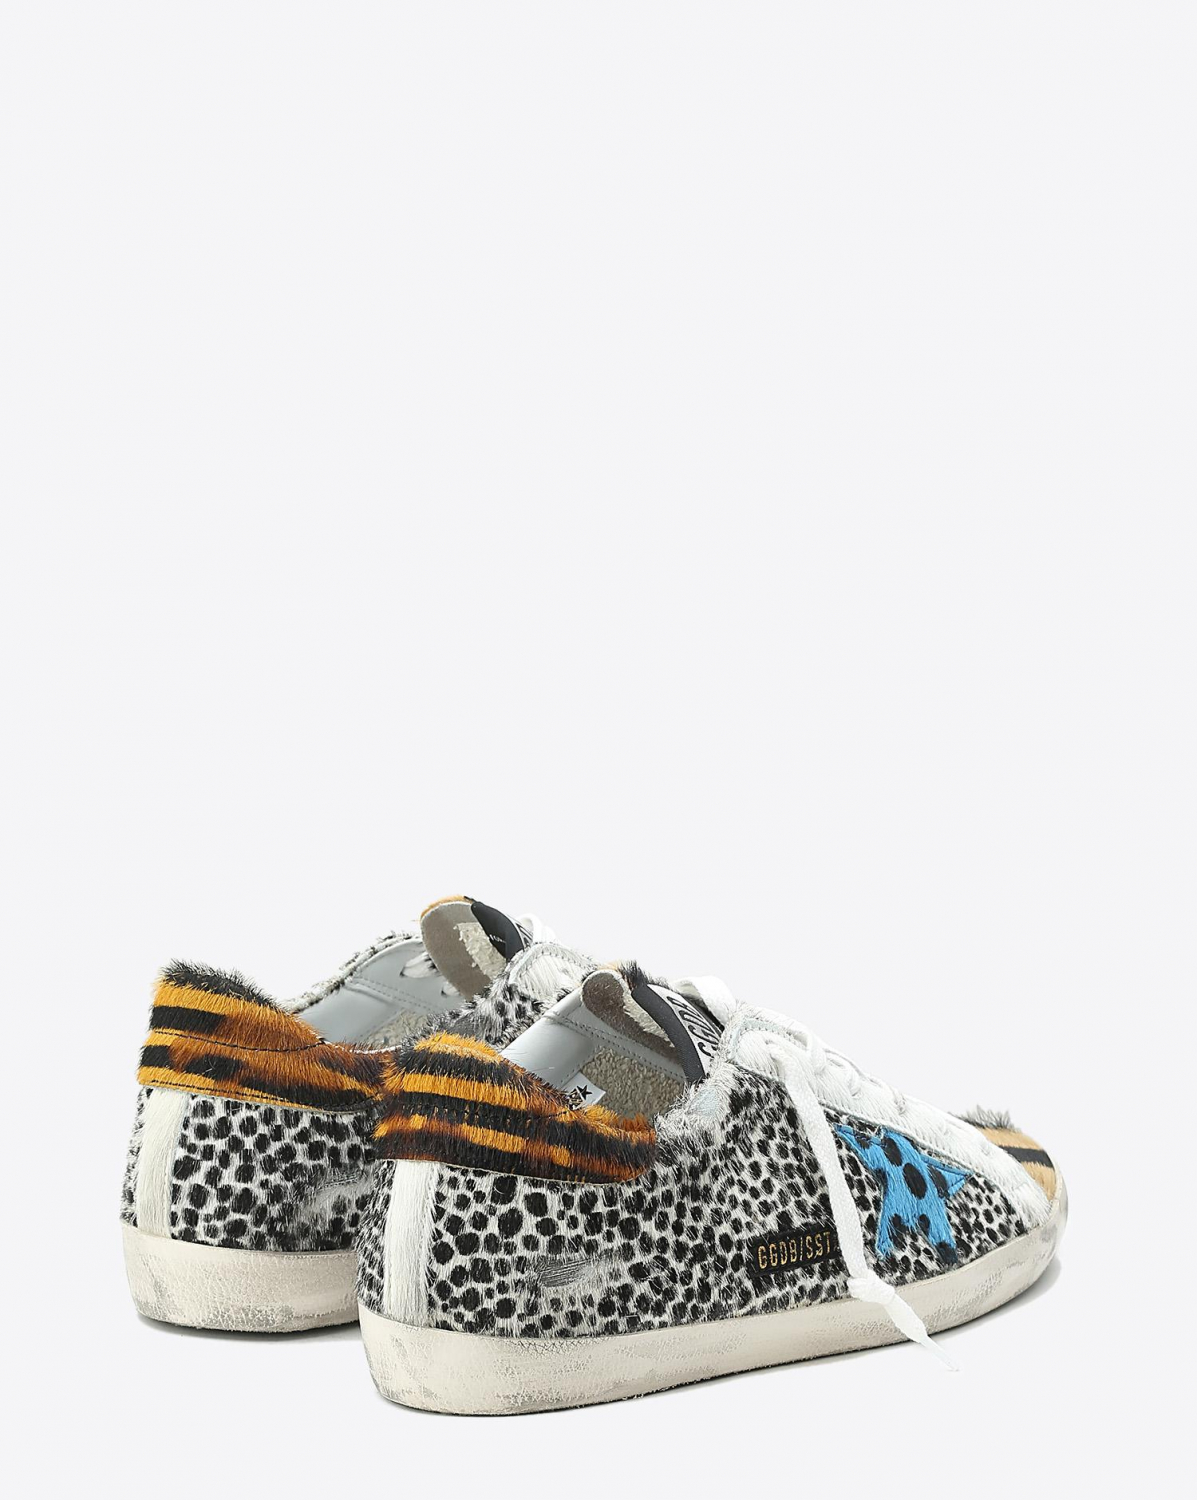 Golden Goose Woman Collection Sneakers